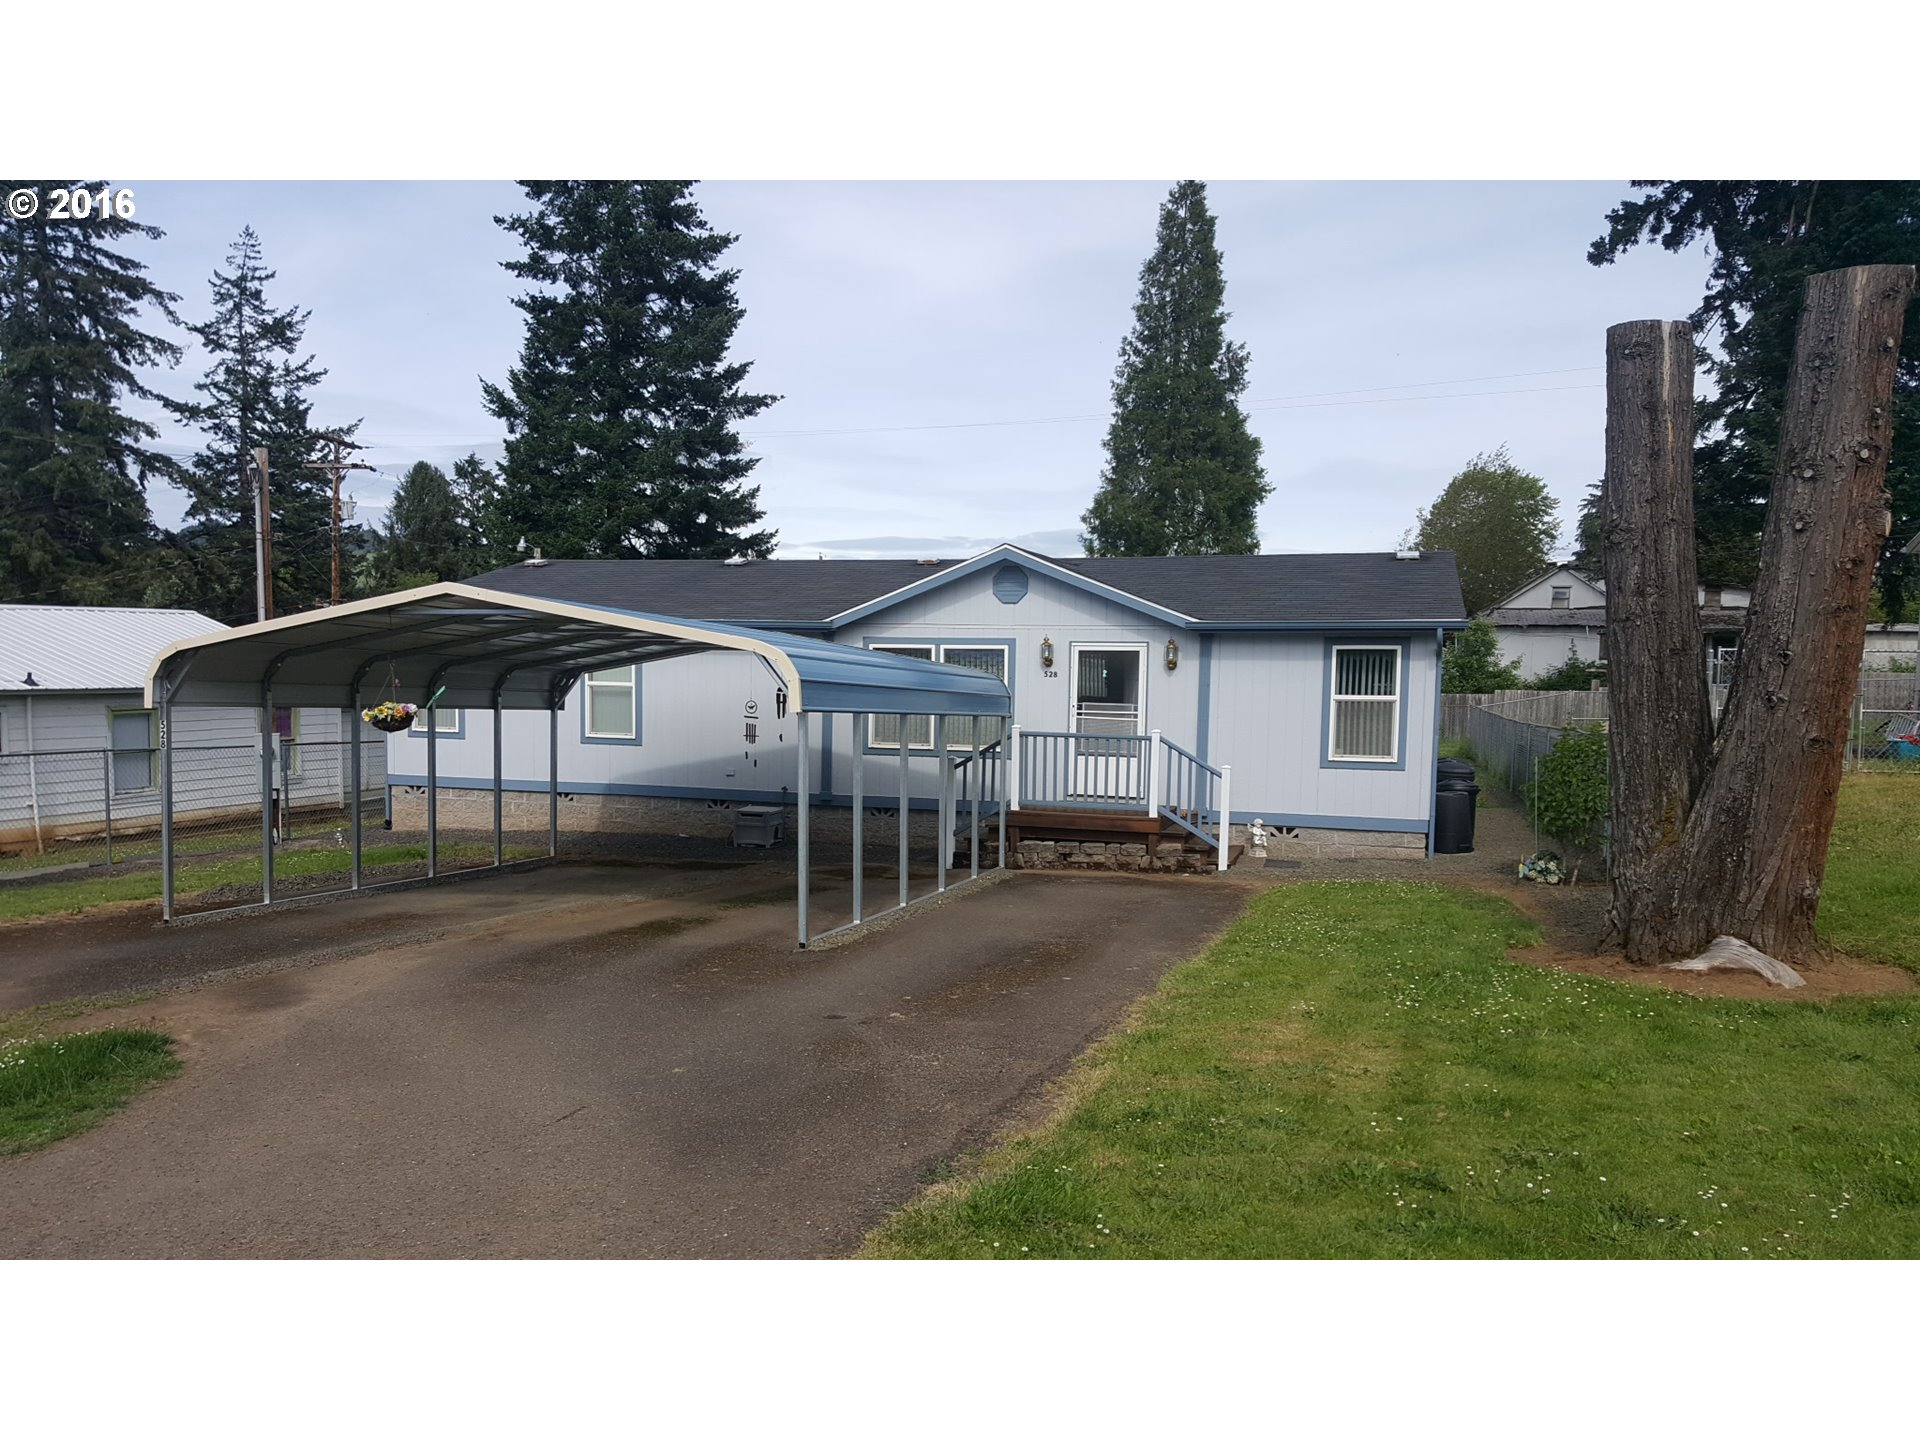 528 CHARLES ST, Yoncalla, OR 97499